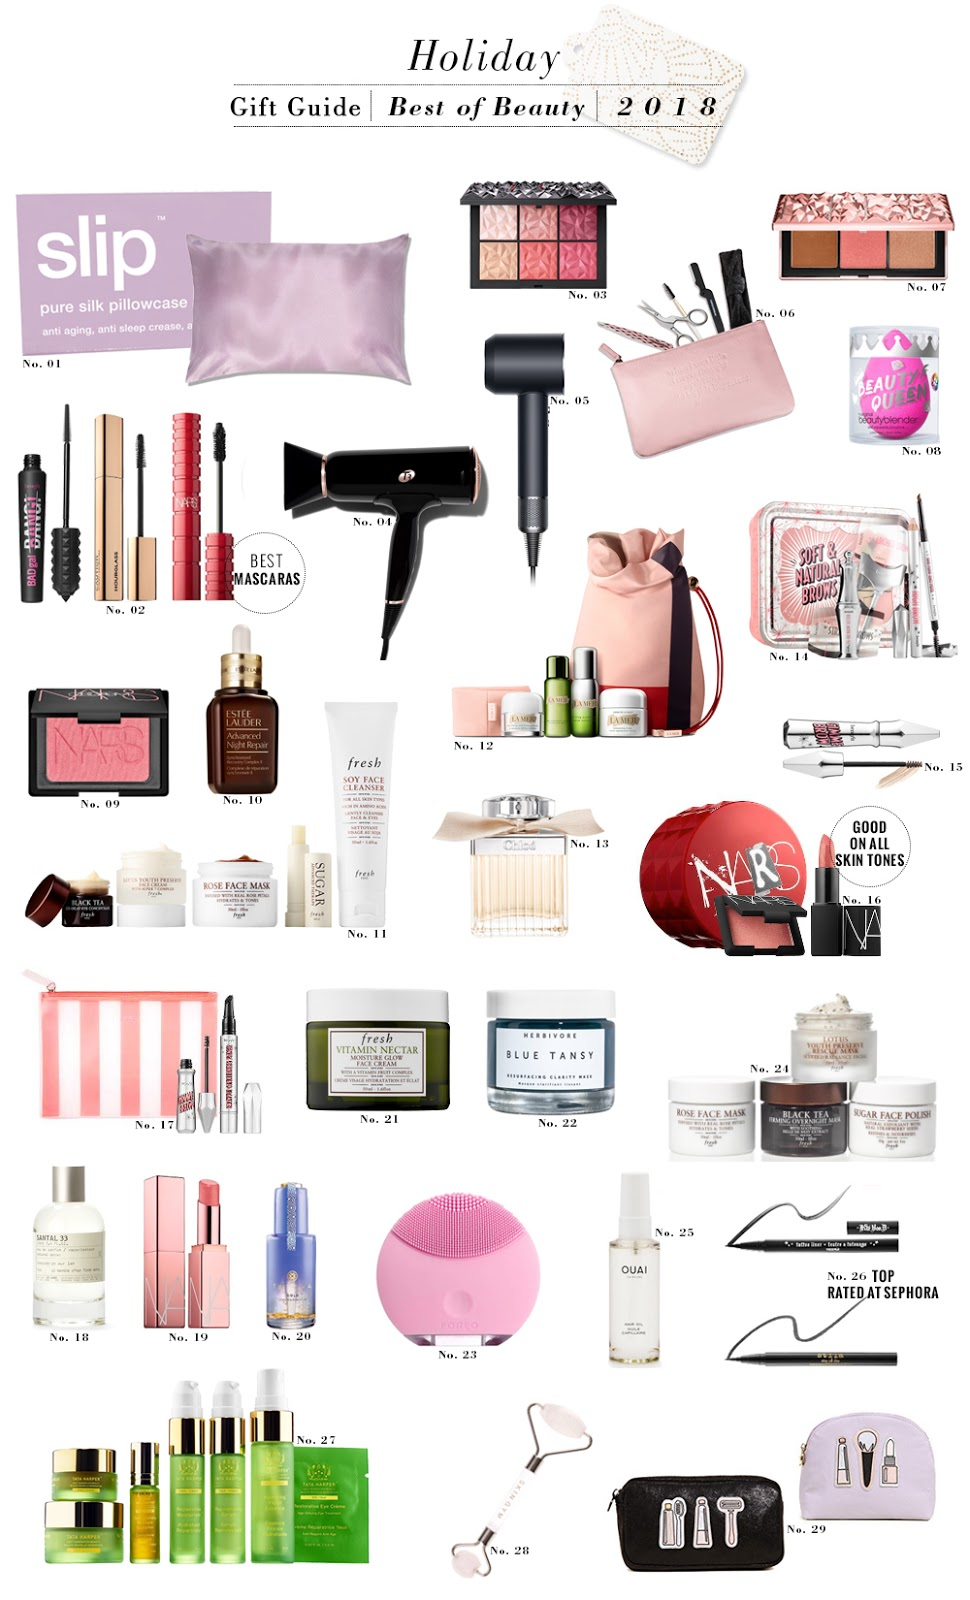 Shopping File: Holiday Gift Guide - Best of Beauty